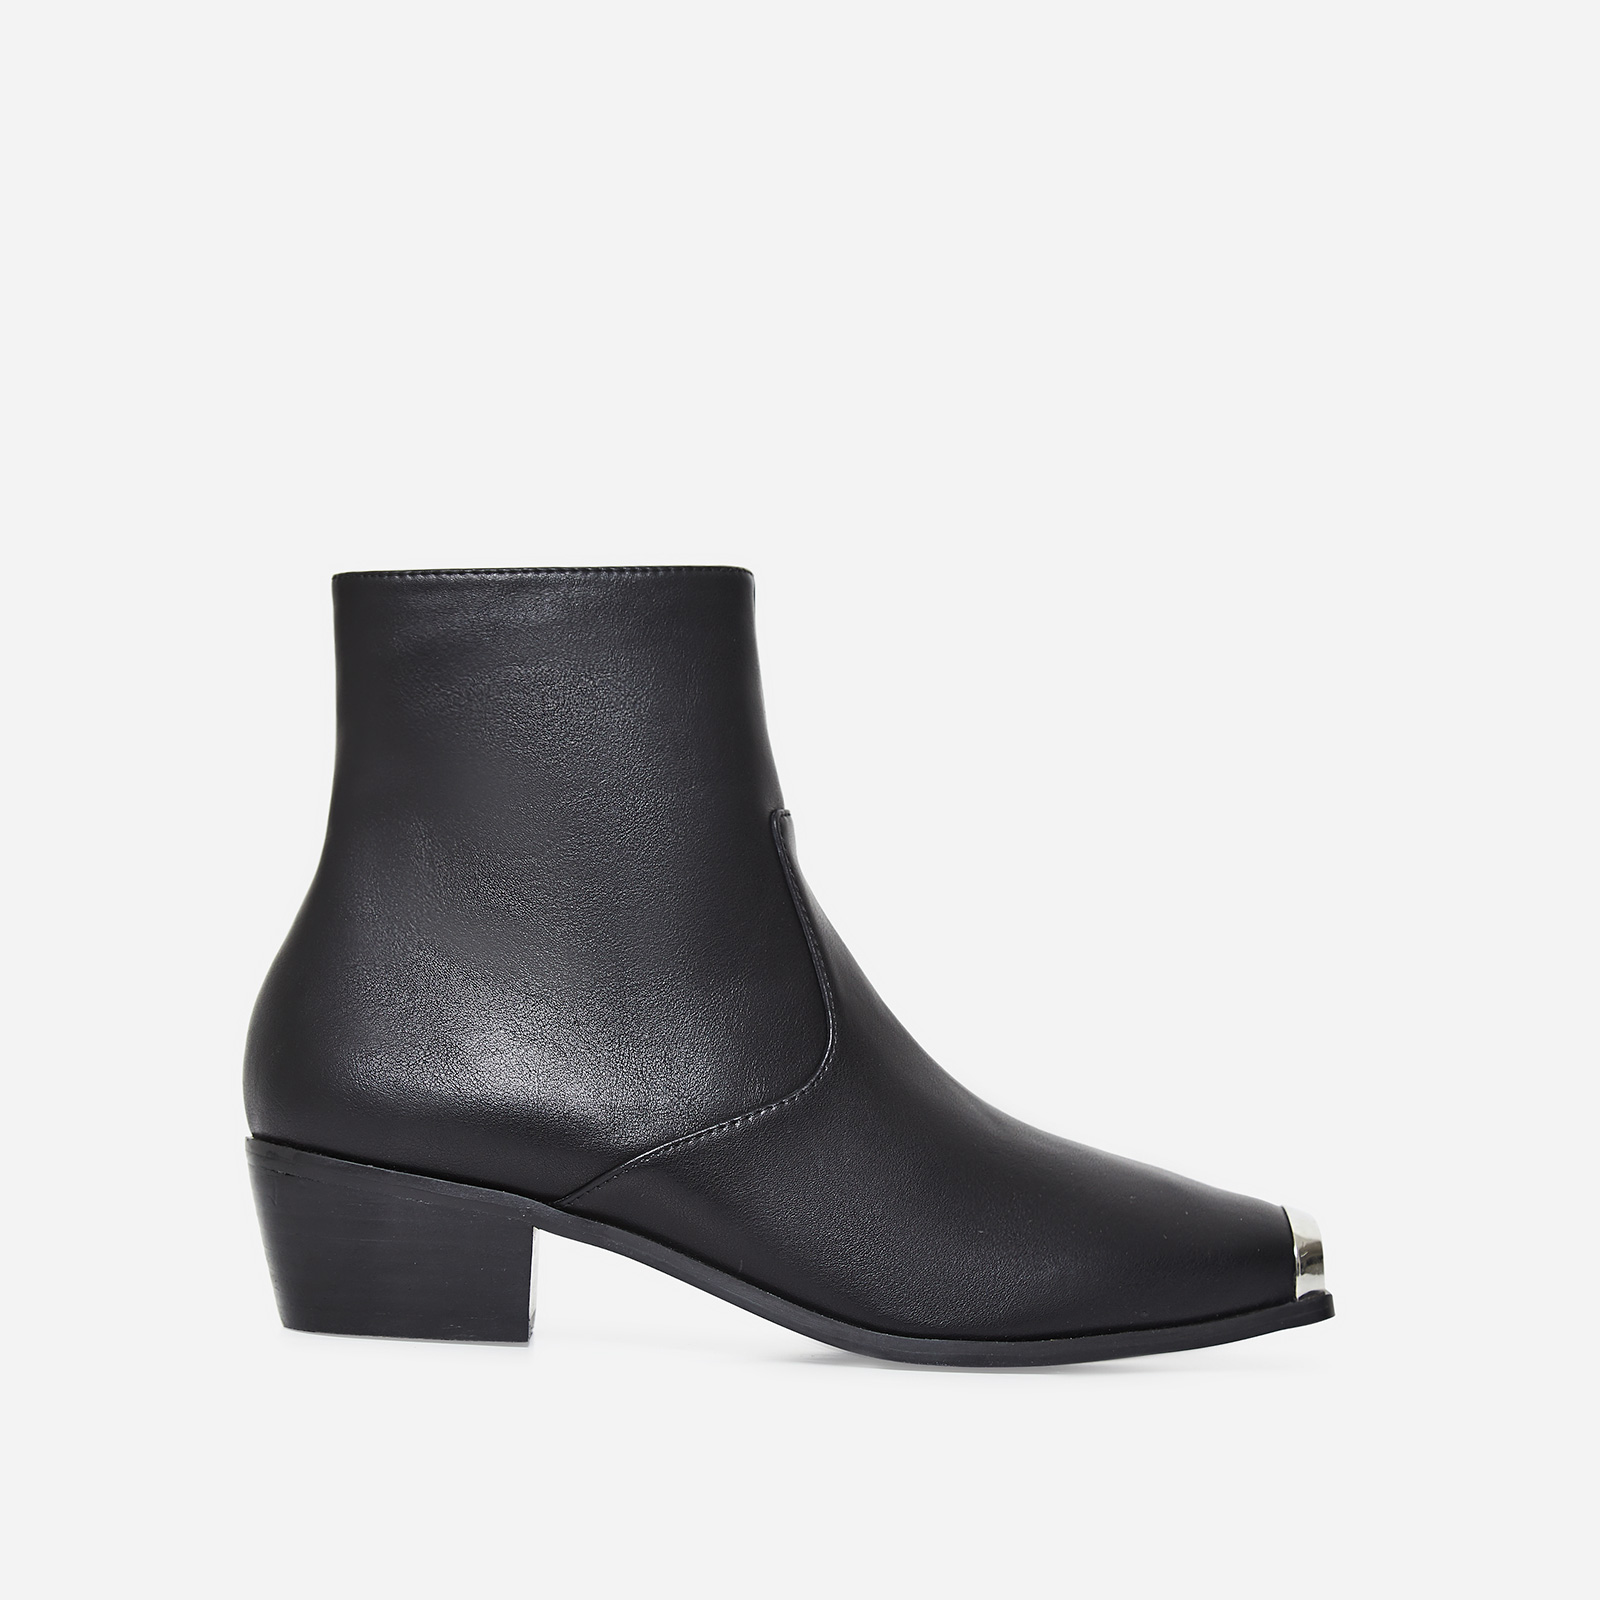 Tris Toe Cap Western Ankle Boot In Black Faux Leather